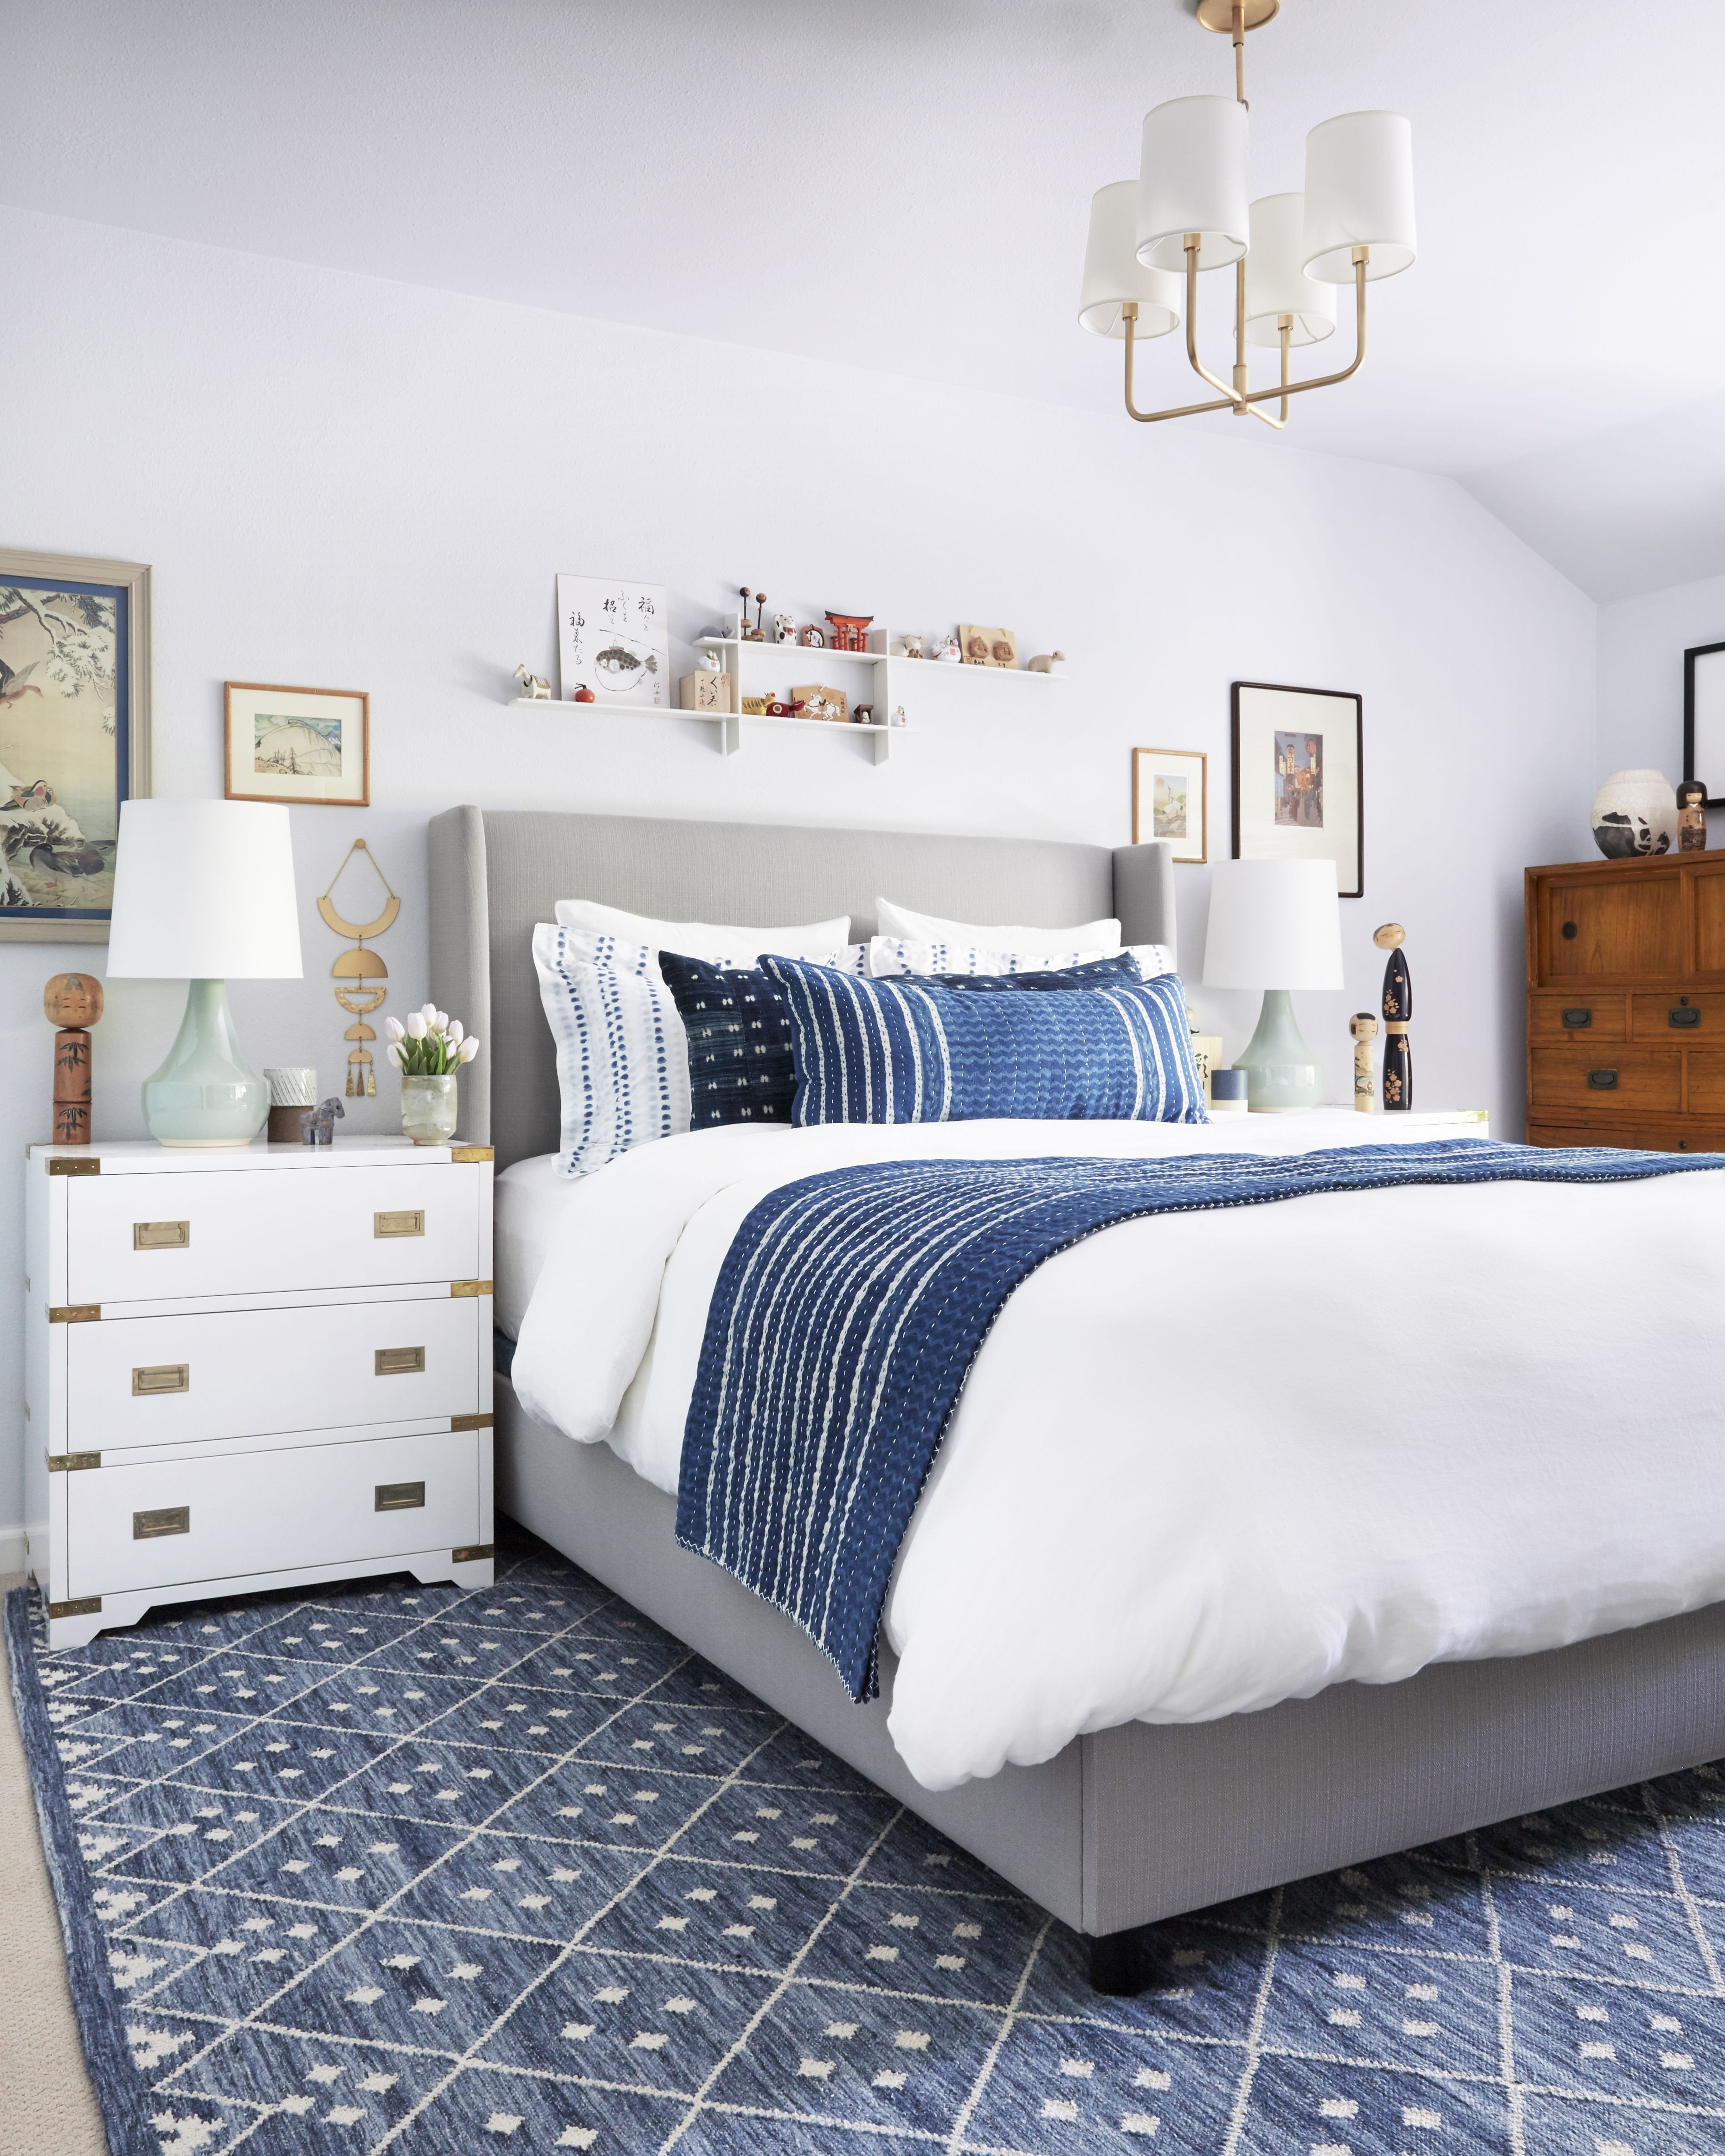 Bedroom area Rug Placement Unique Guest Bedroom Ideas How to Create Big Design Impact without